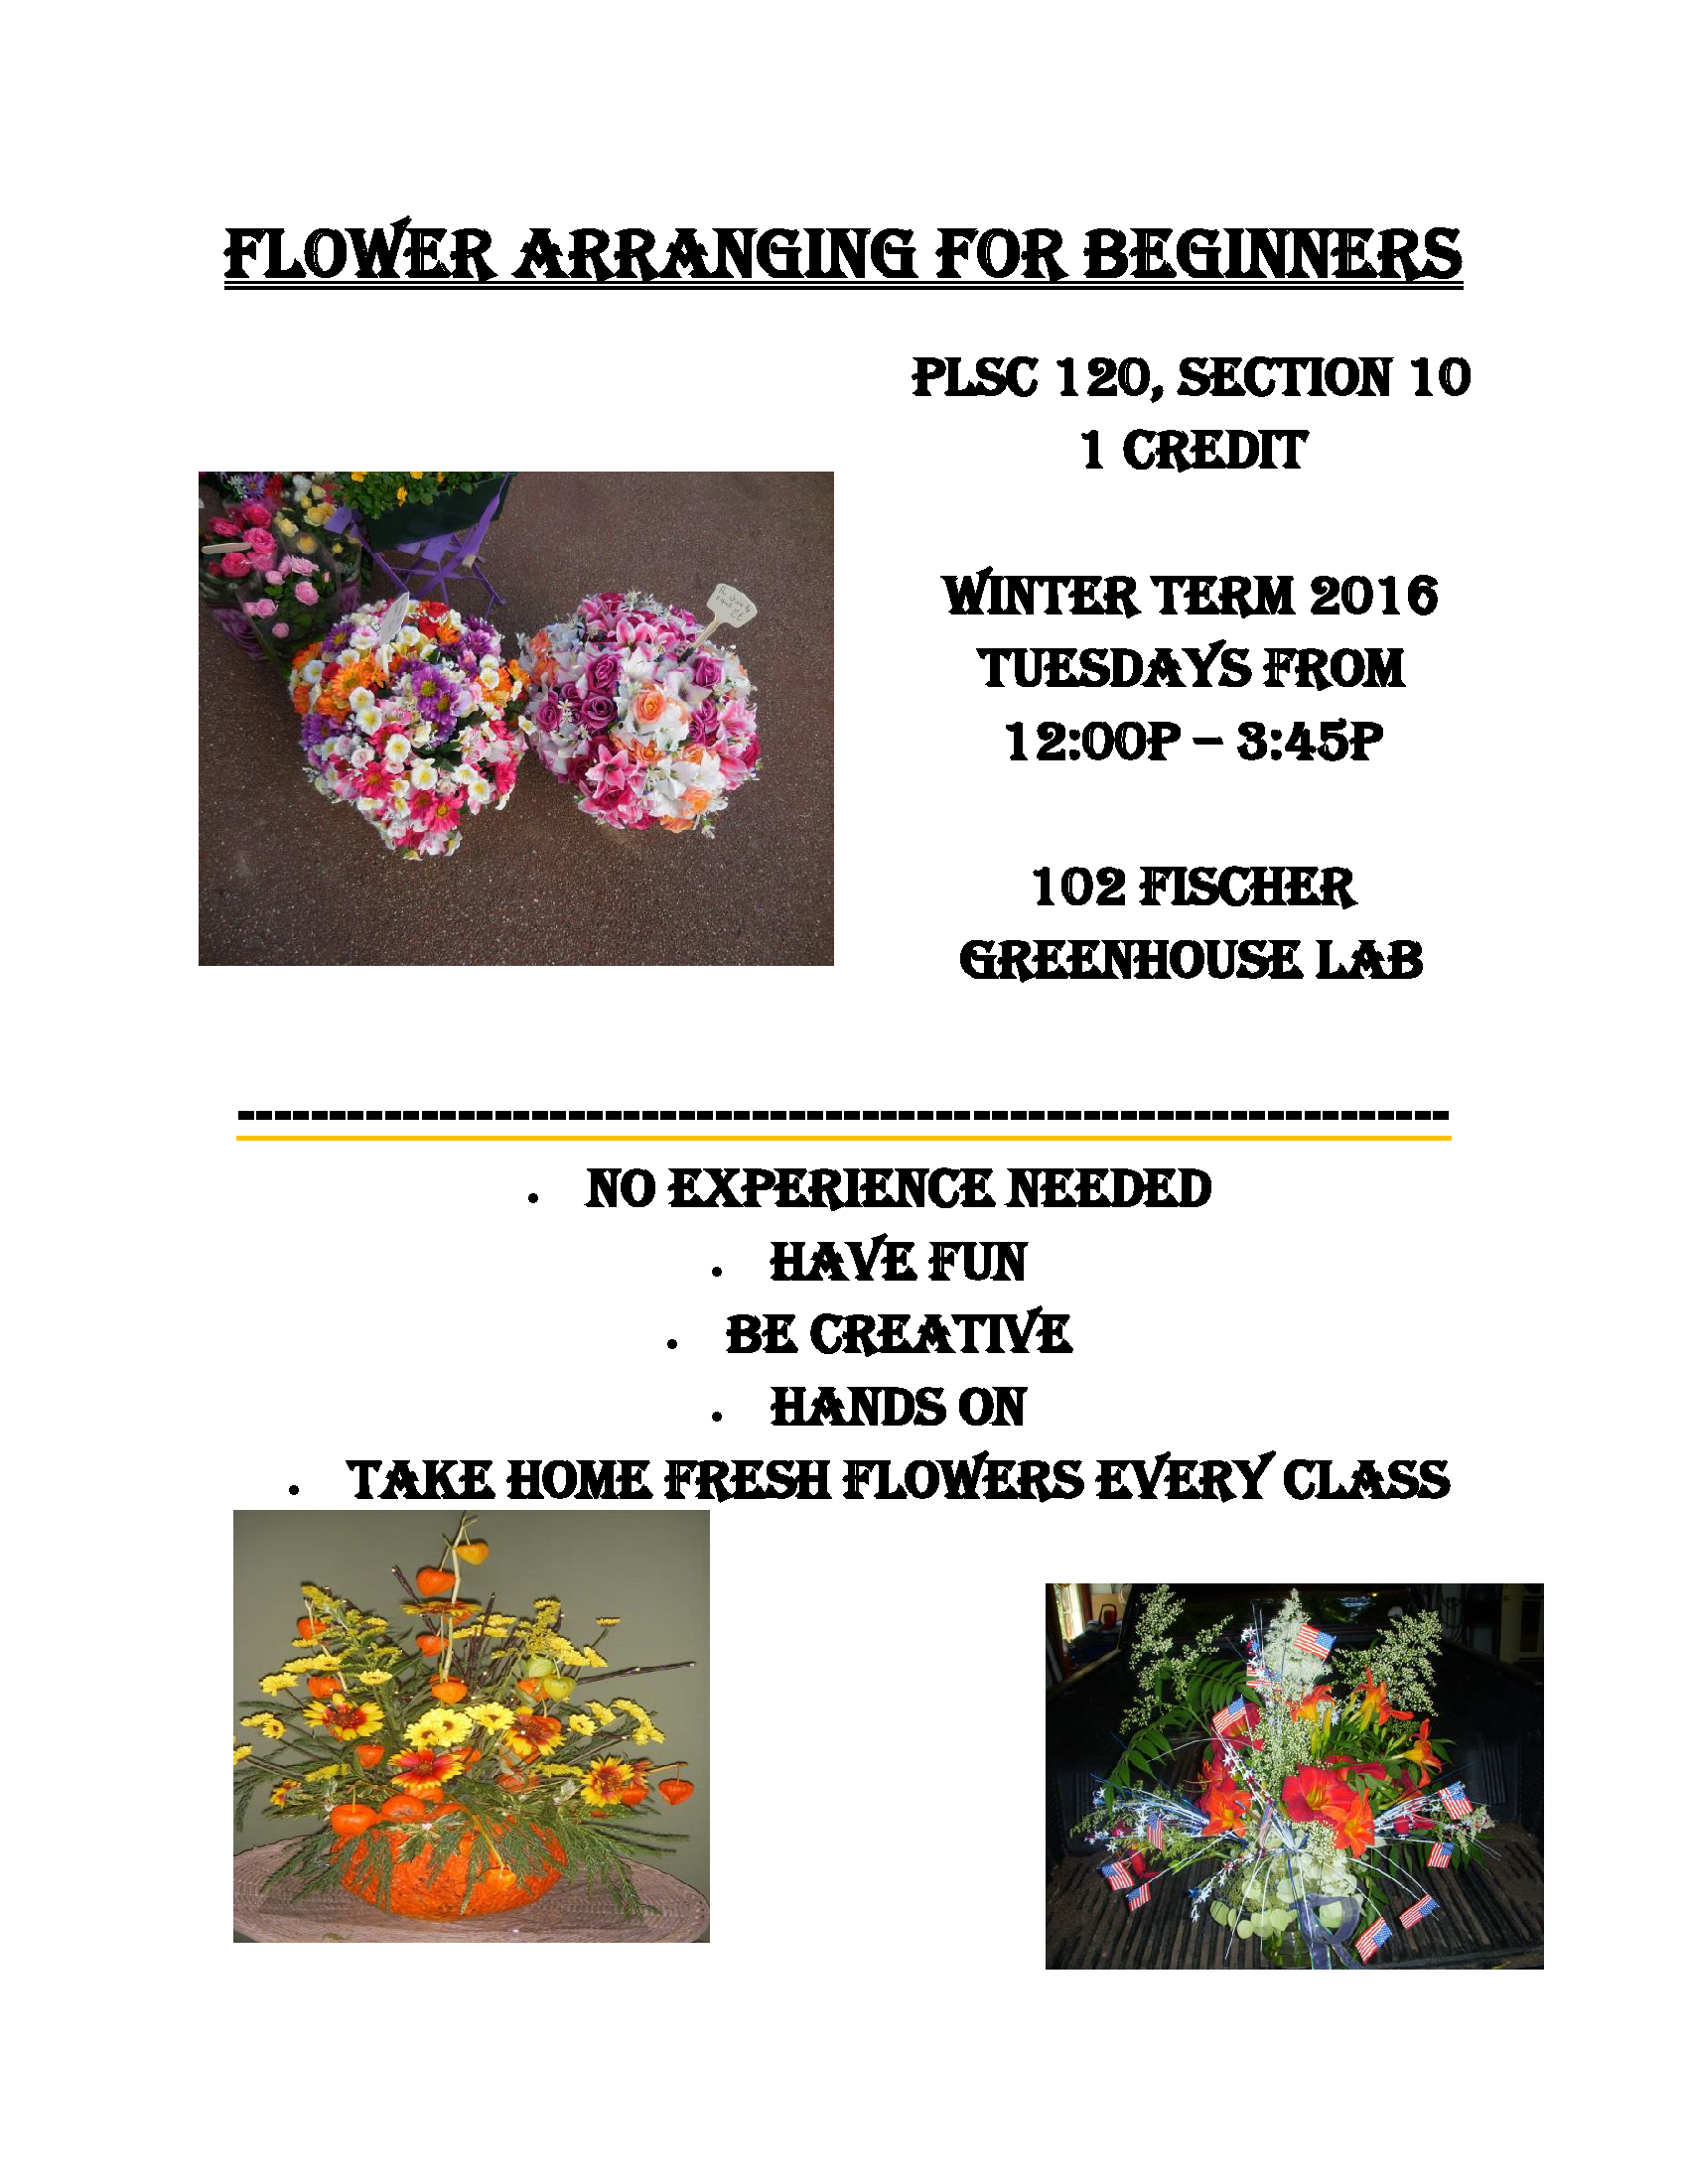 Flower arranging for beginners poster